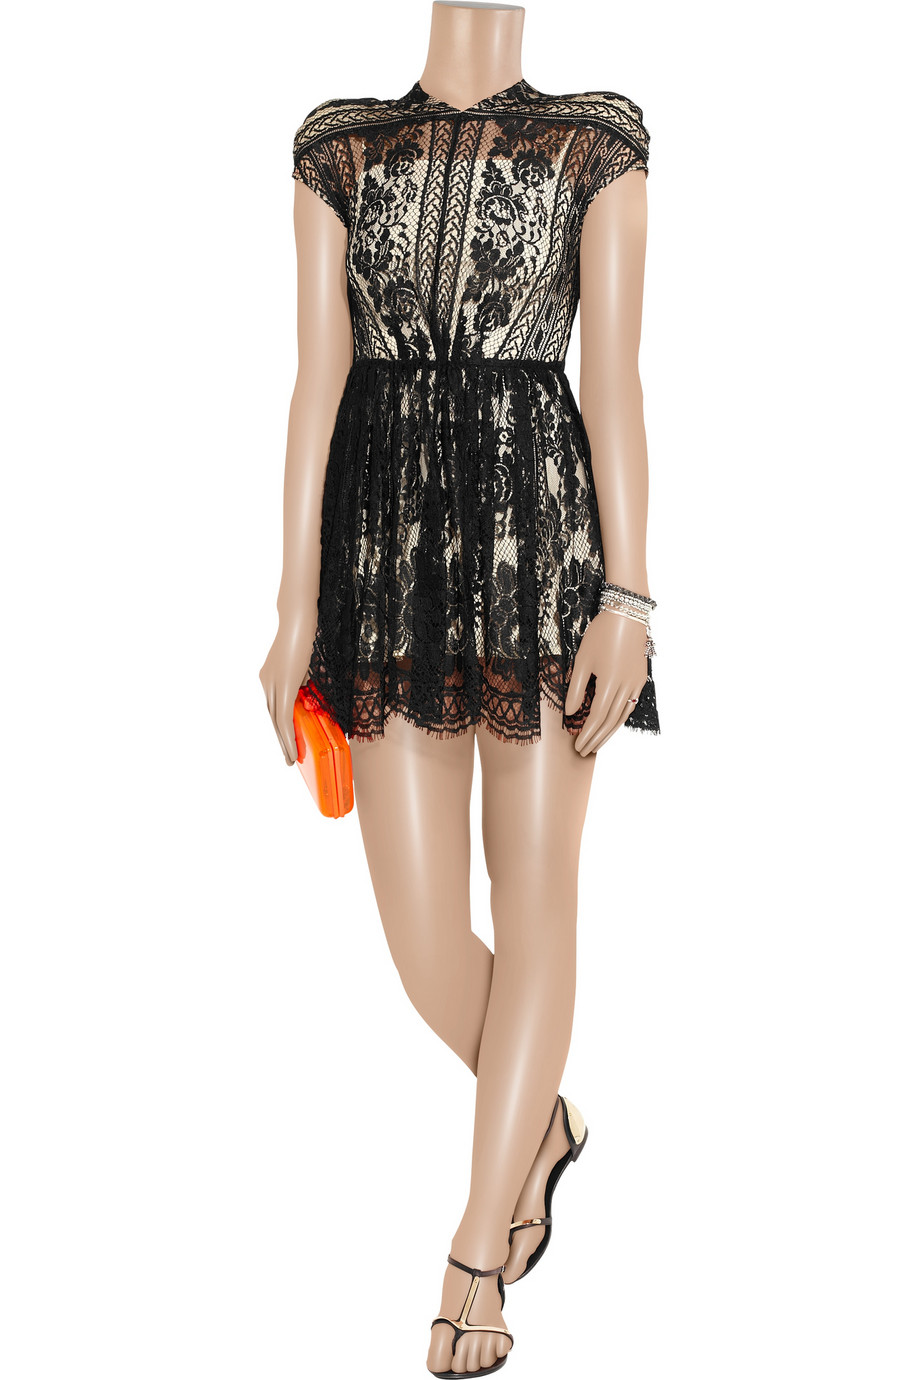 Lover Wiccan Lace Mini Dress In Black Lyst